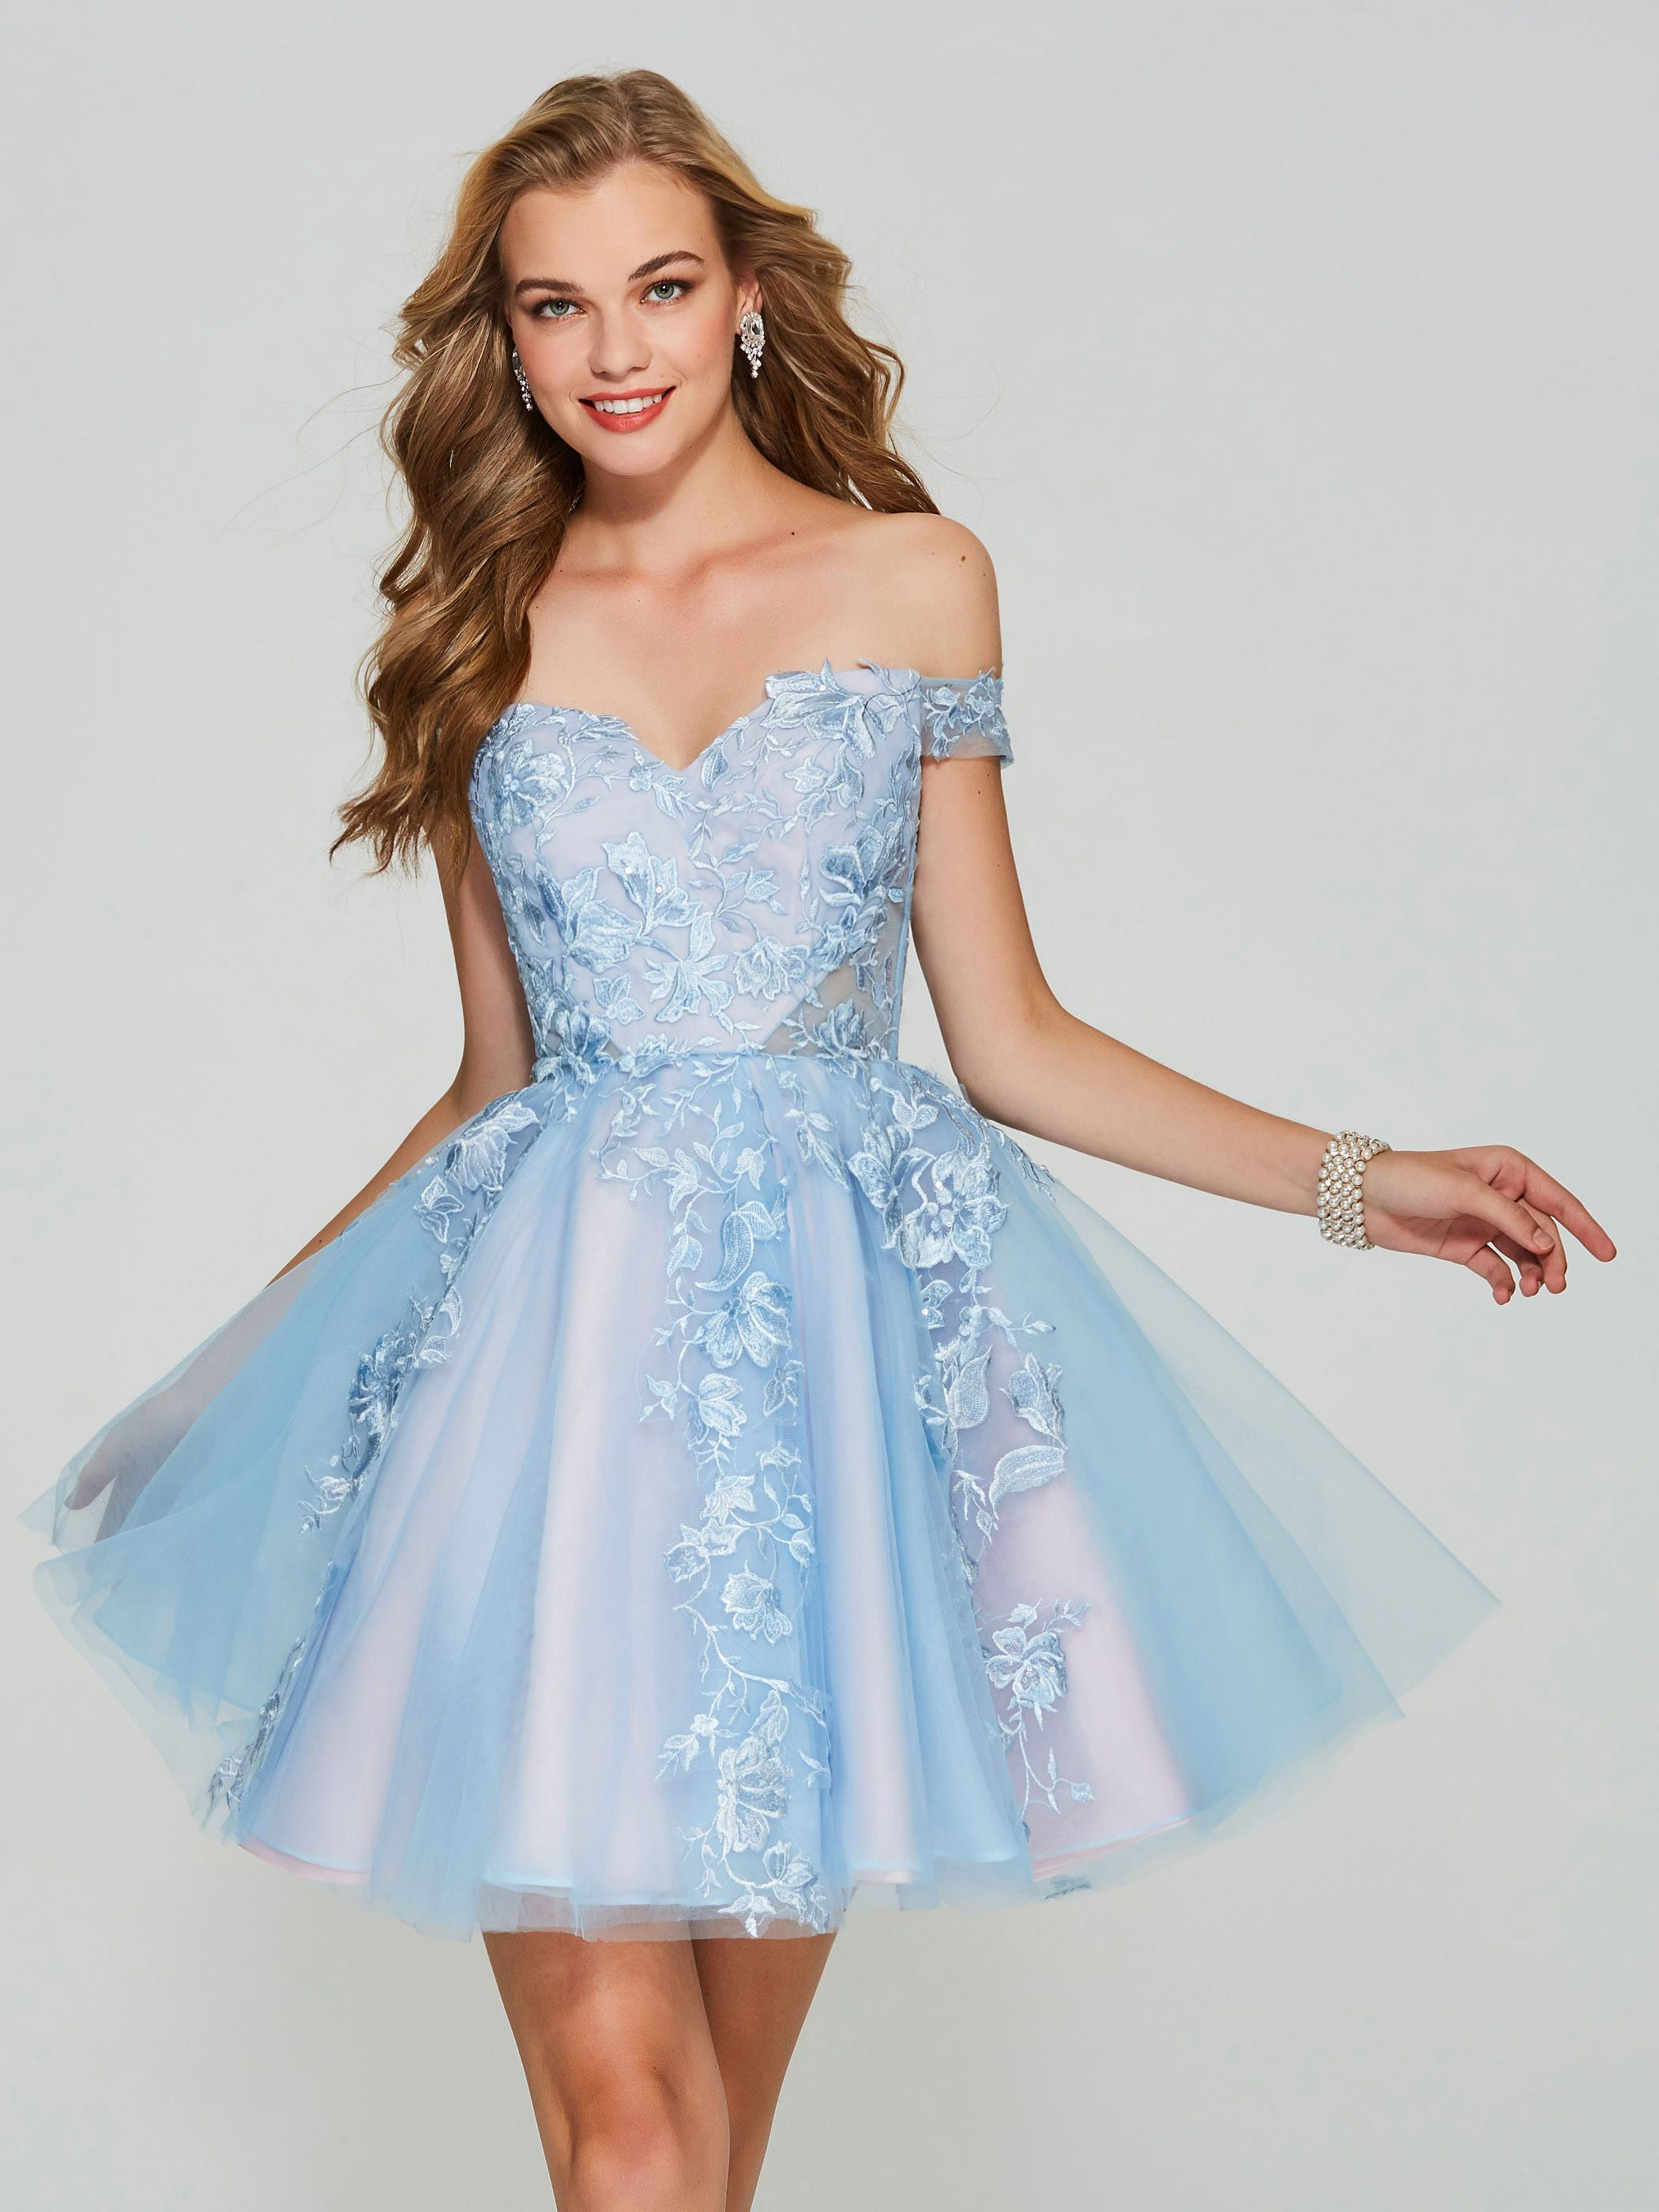 Off the shoulder applique lace short homecoming dress homecoming